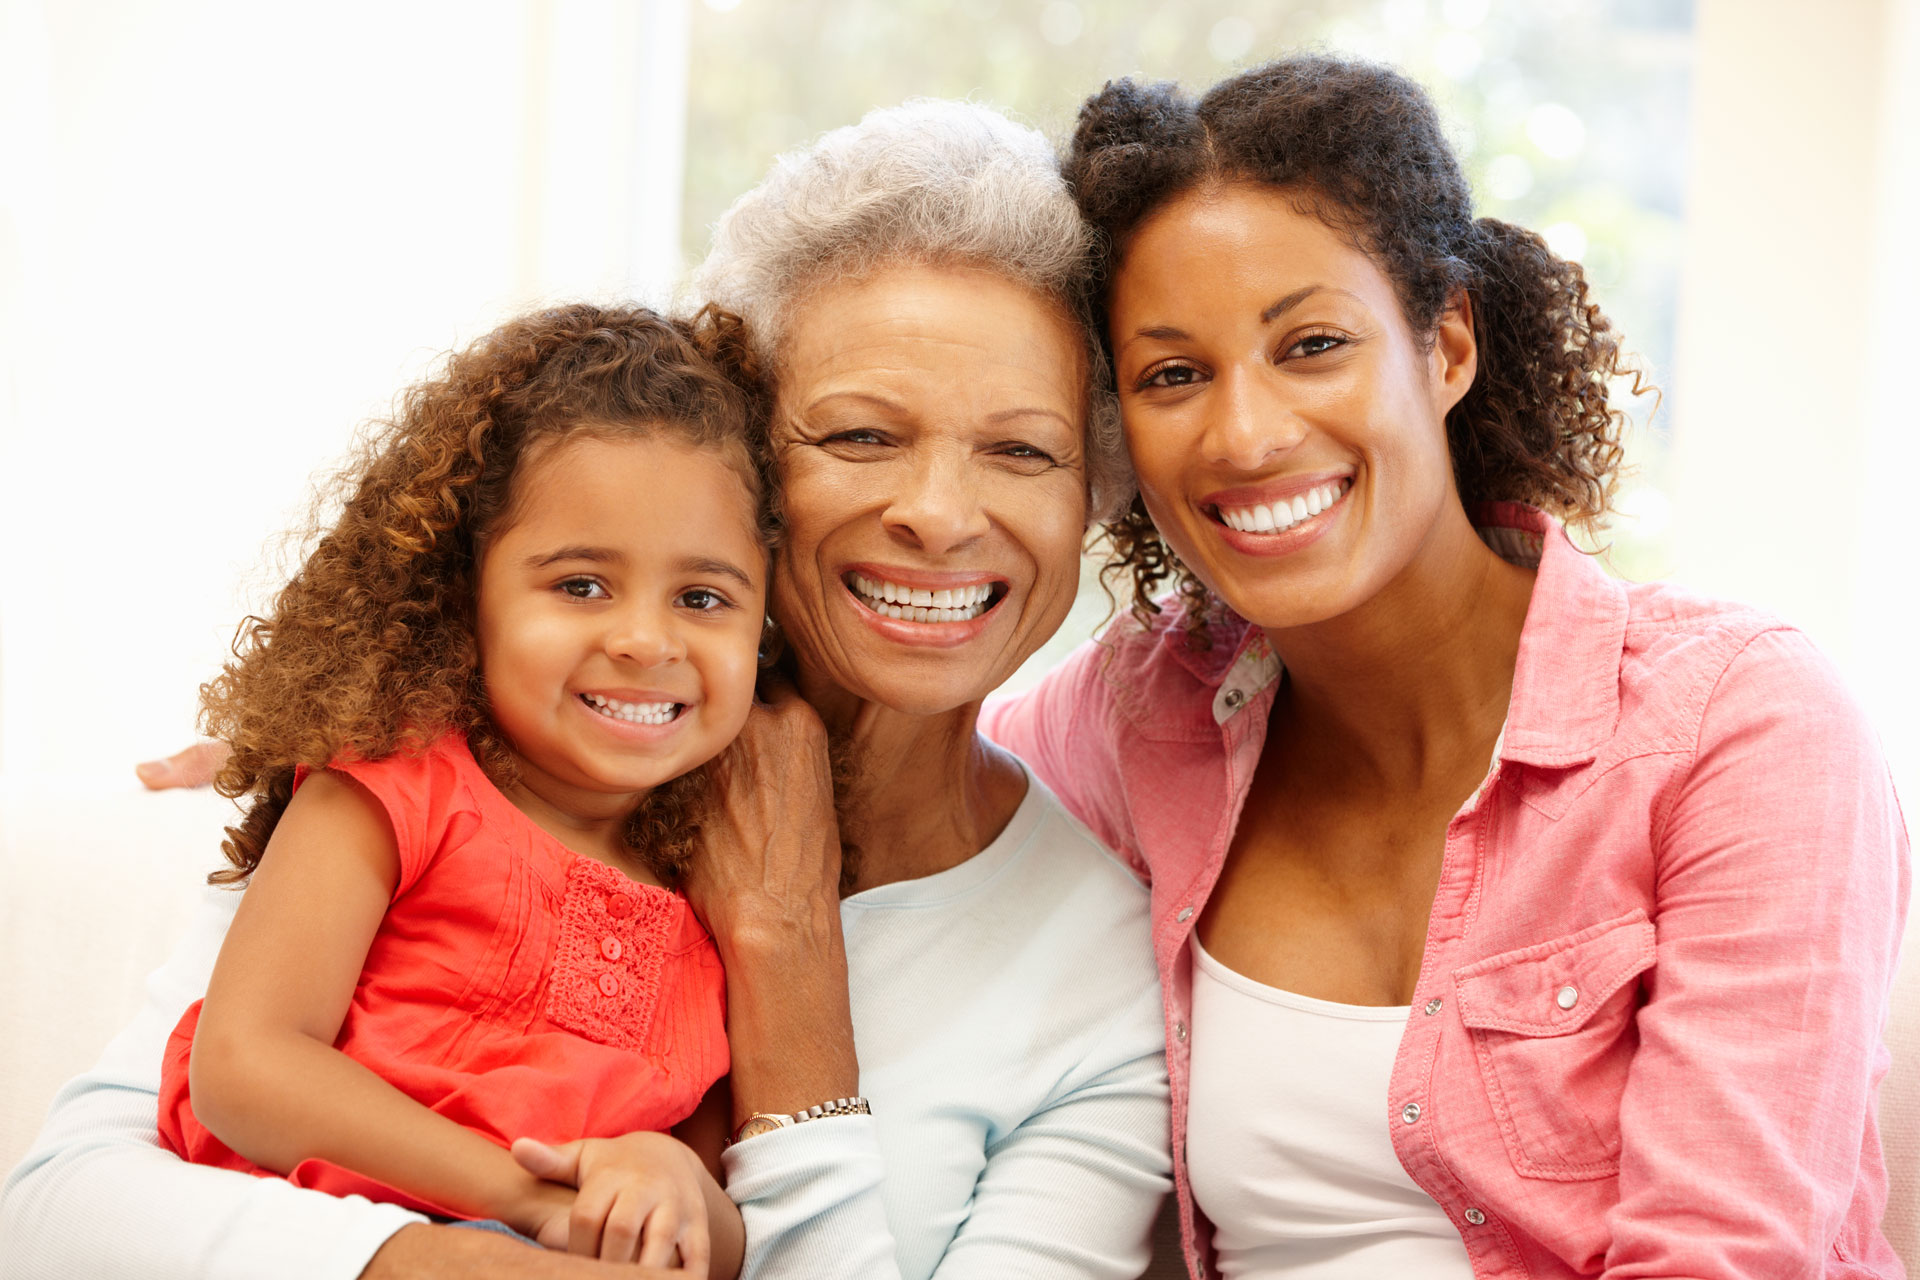 Grandmother, mother and child together smiling